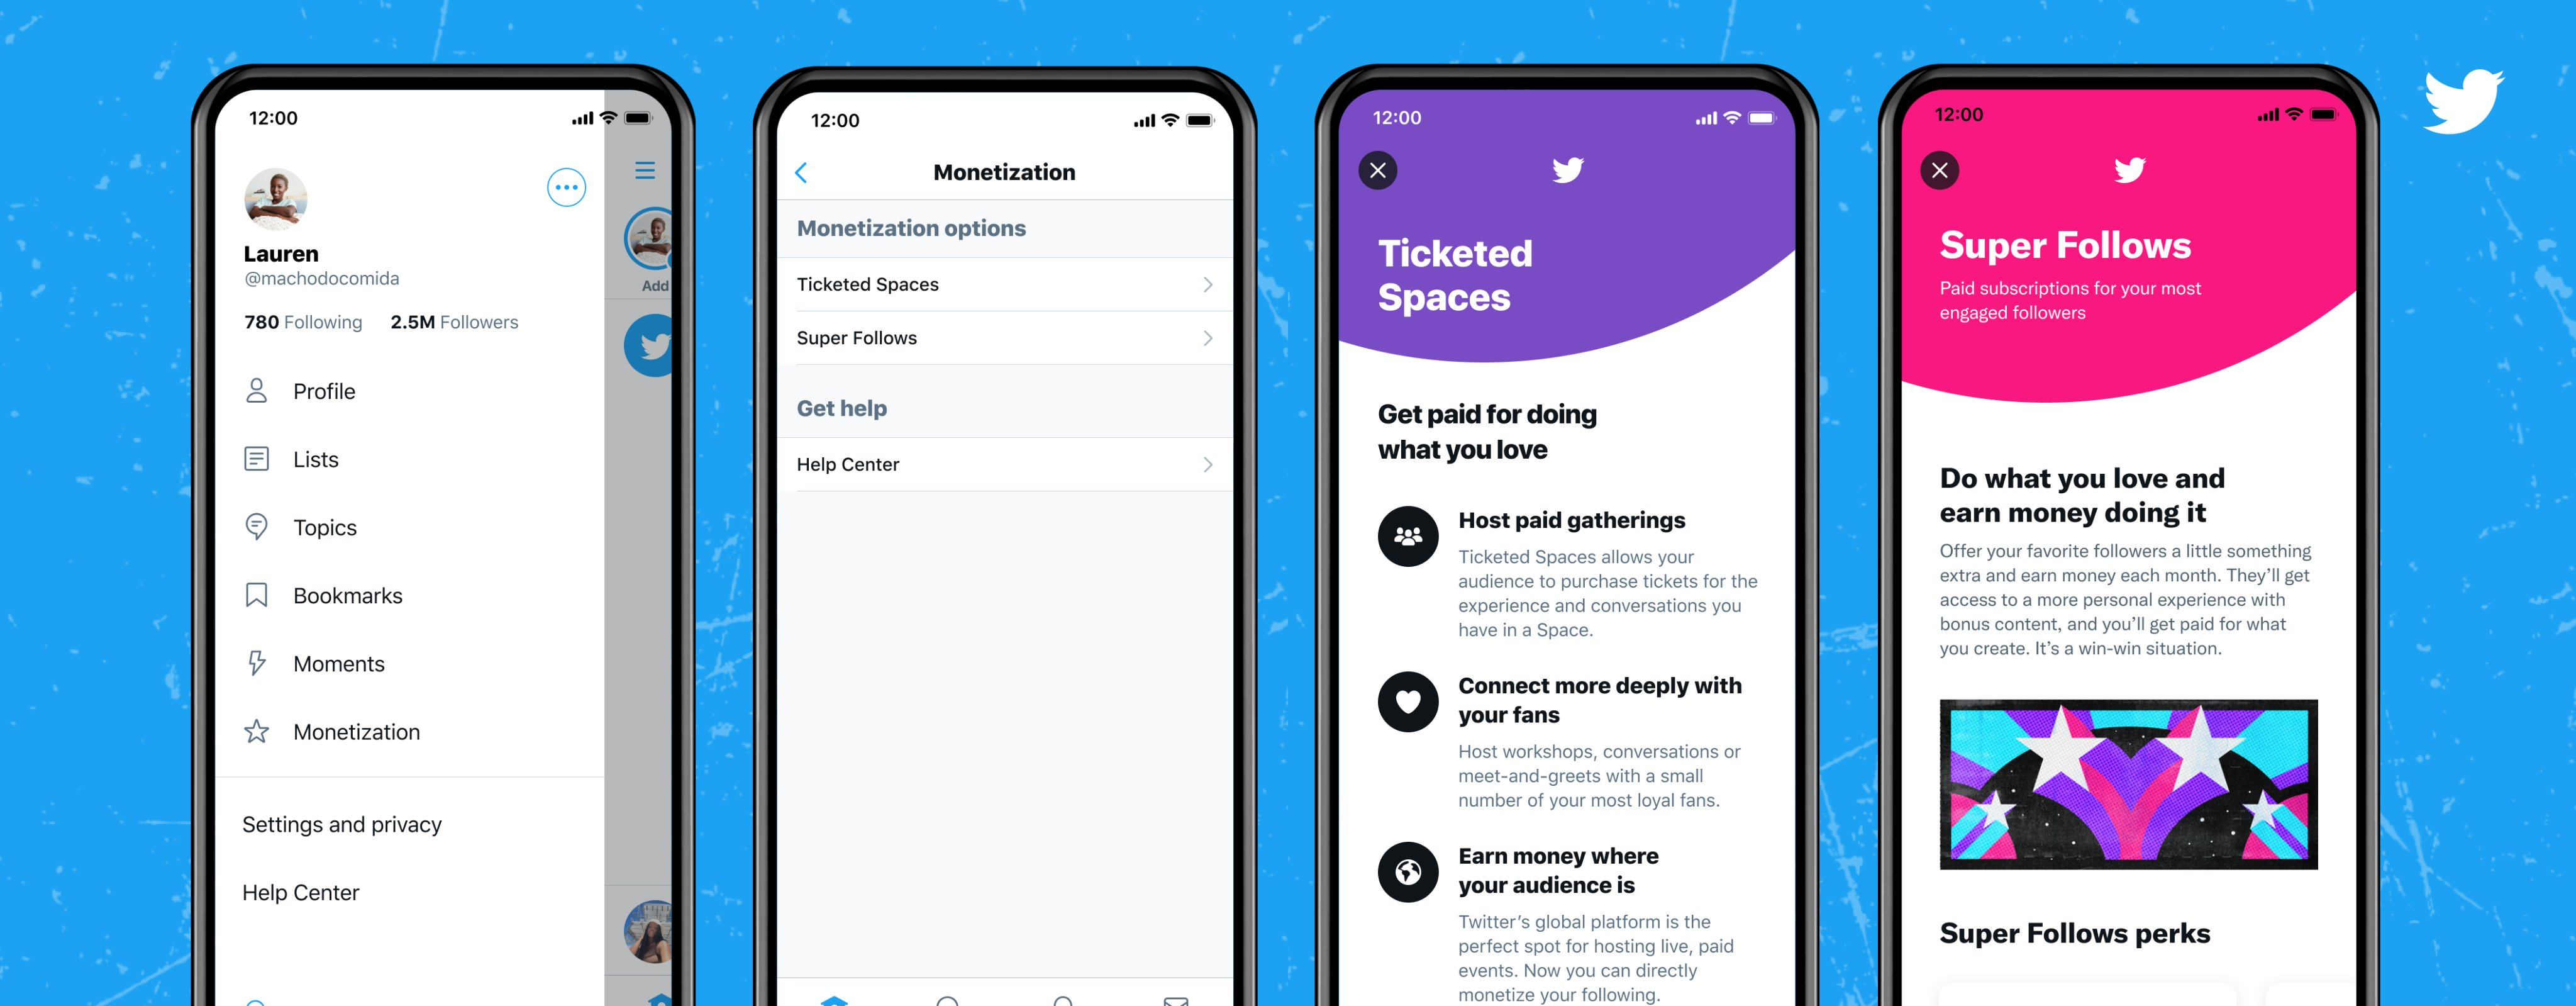 Twitter Expands the Availability of Super Follow and Ticketed Spaces